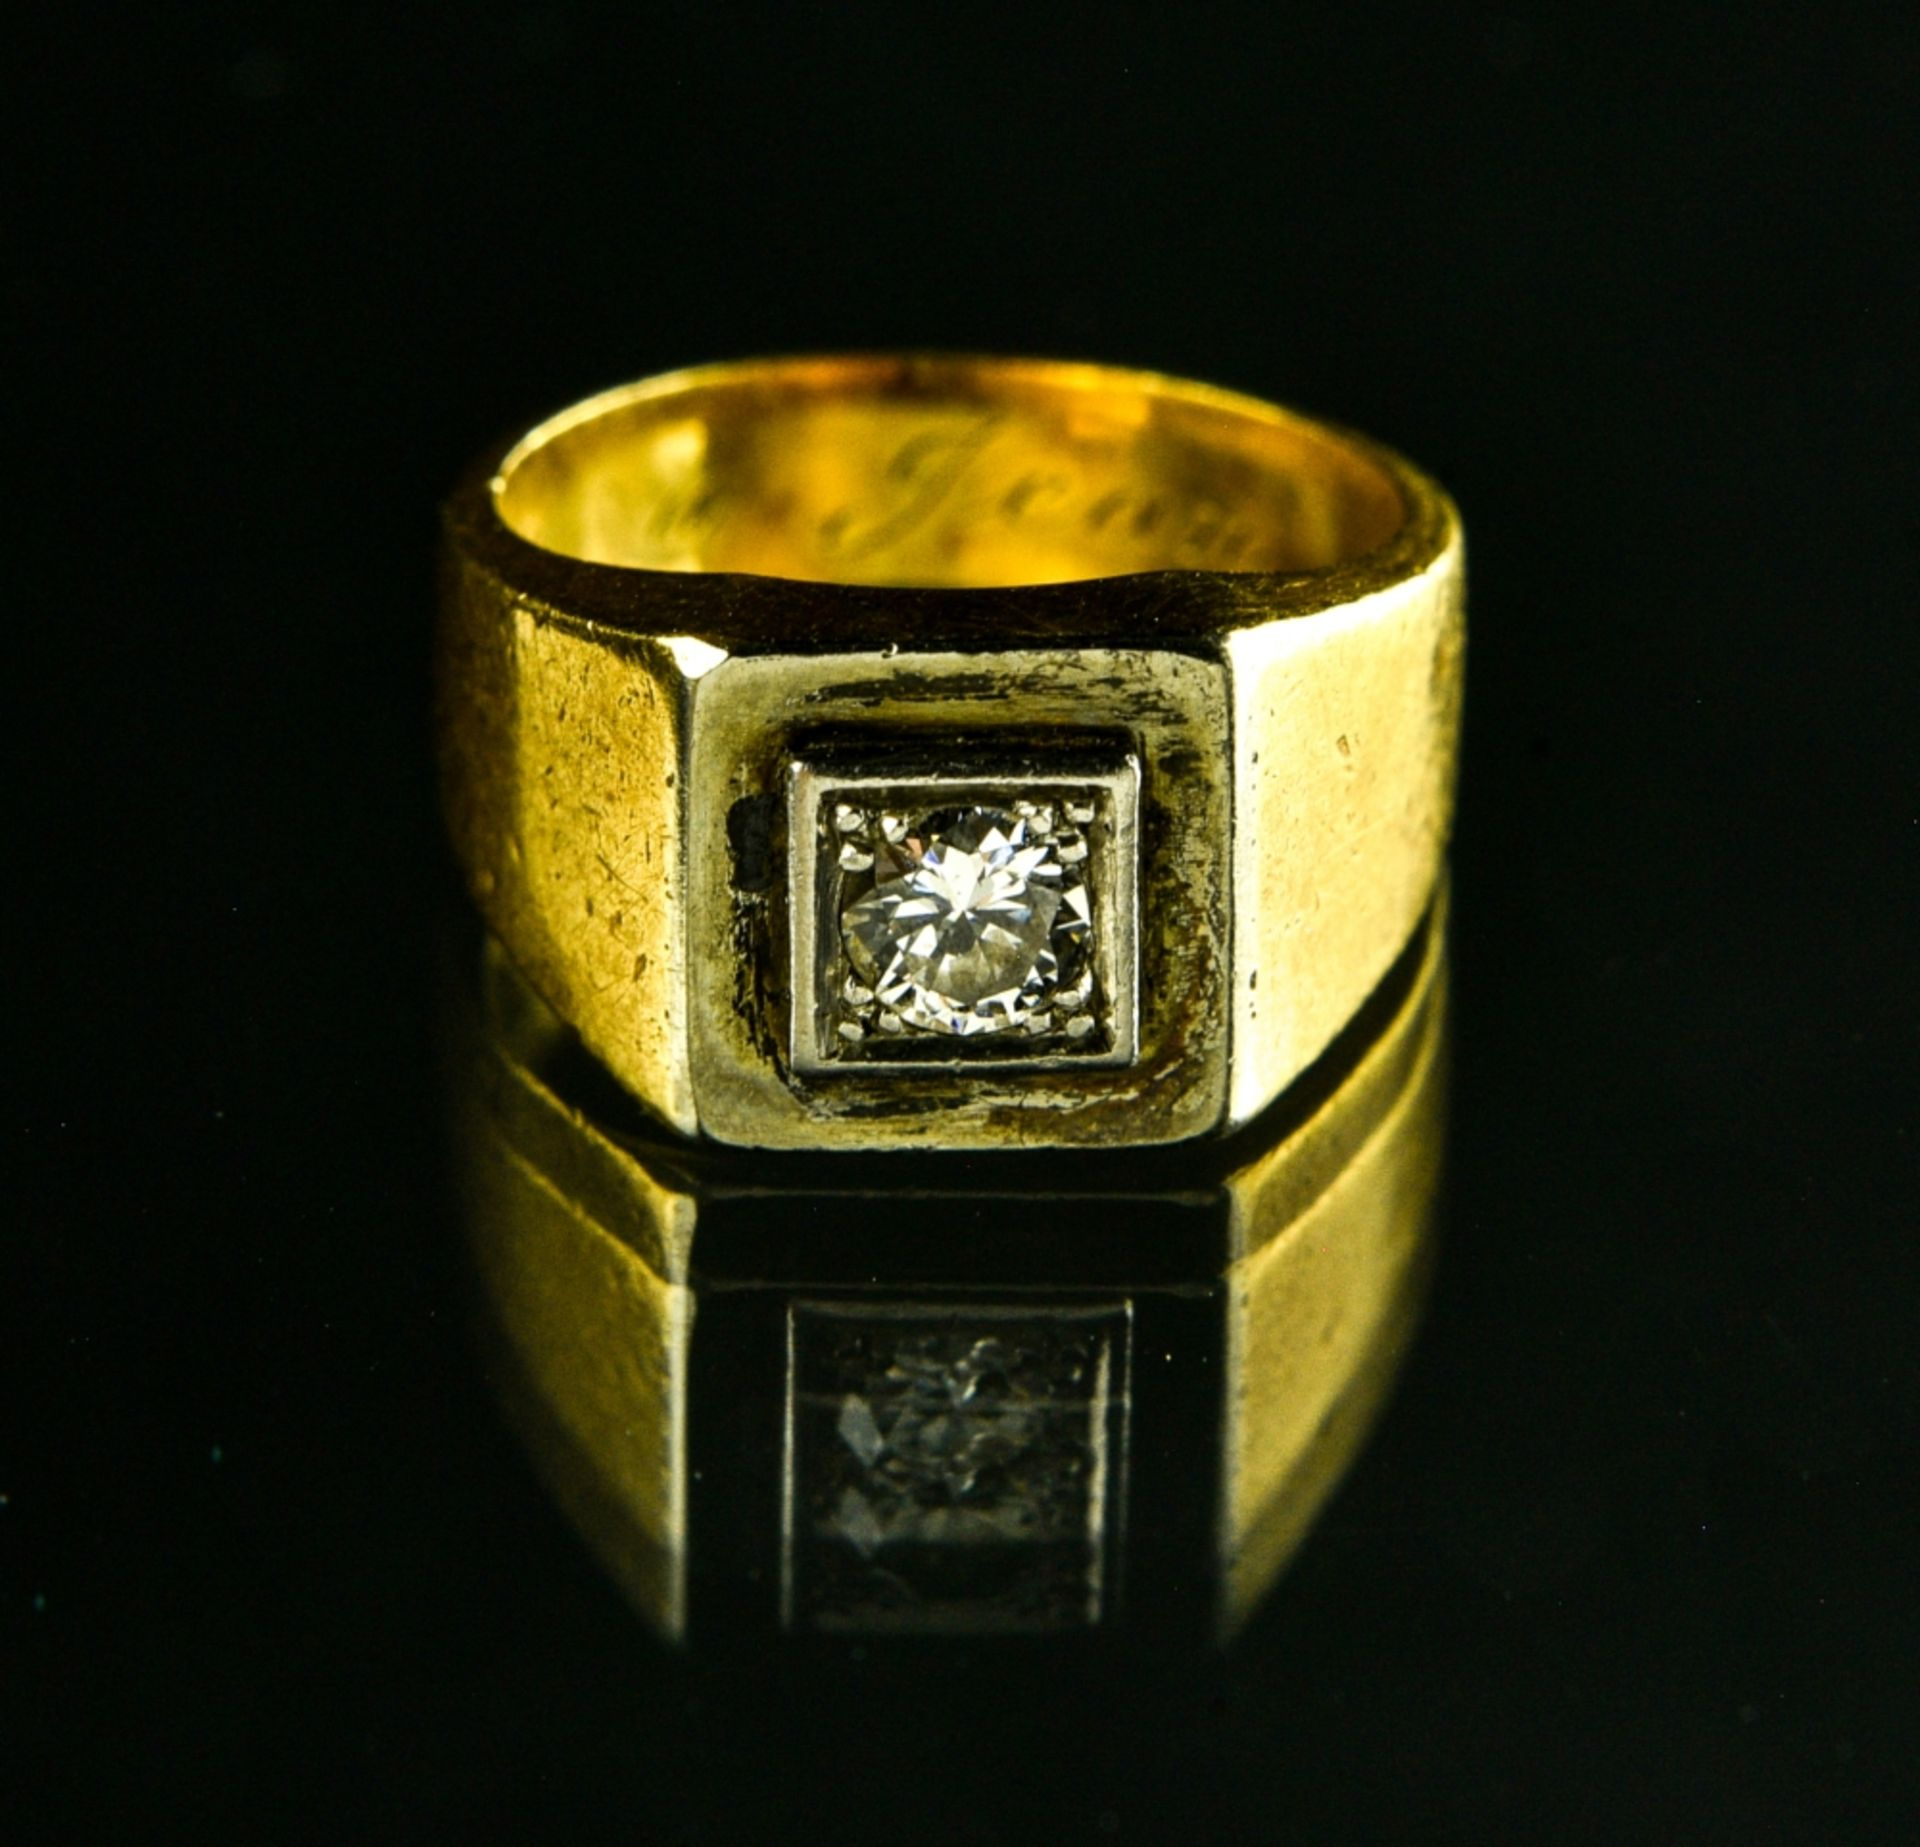 """Lot of 3 rings 18 kt white gold. 1. Signet ring without a hallmark, inscribed """"Yvette ˆ Jean"""" - Image 3 of 4"""